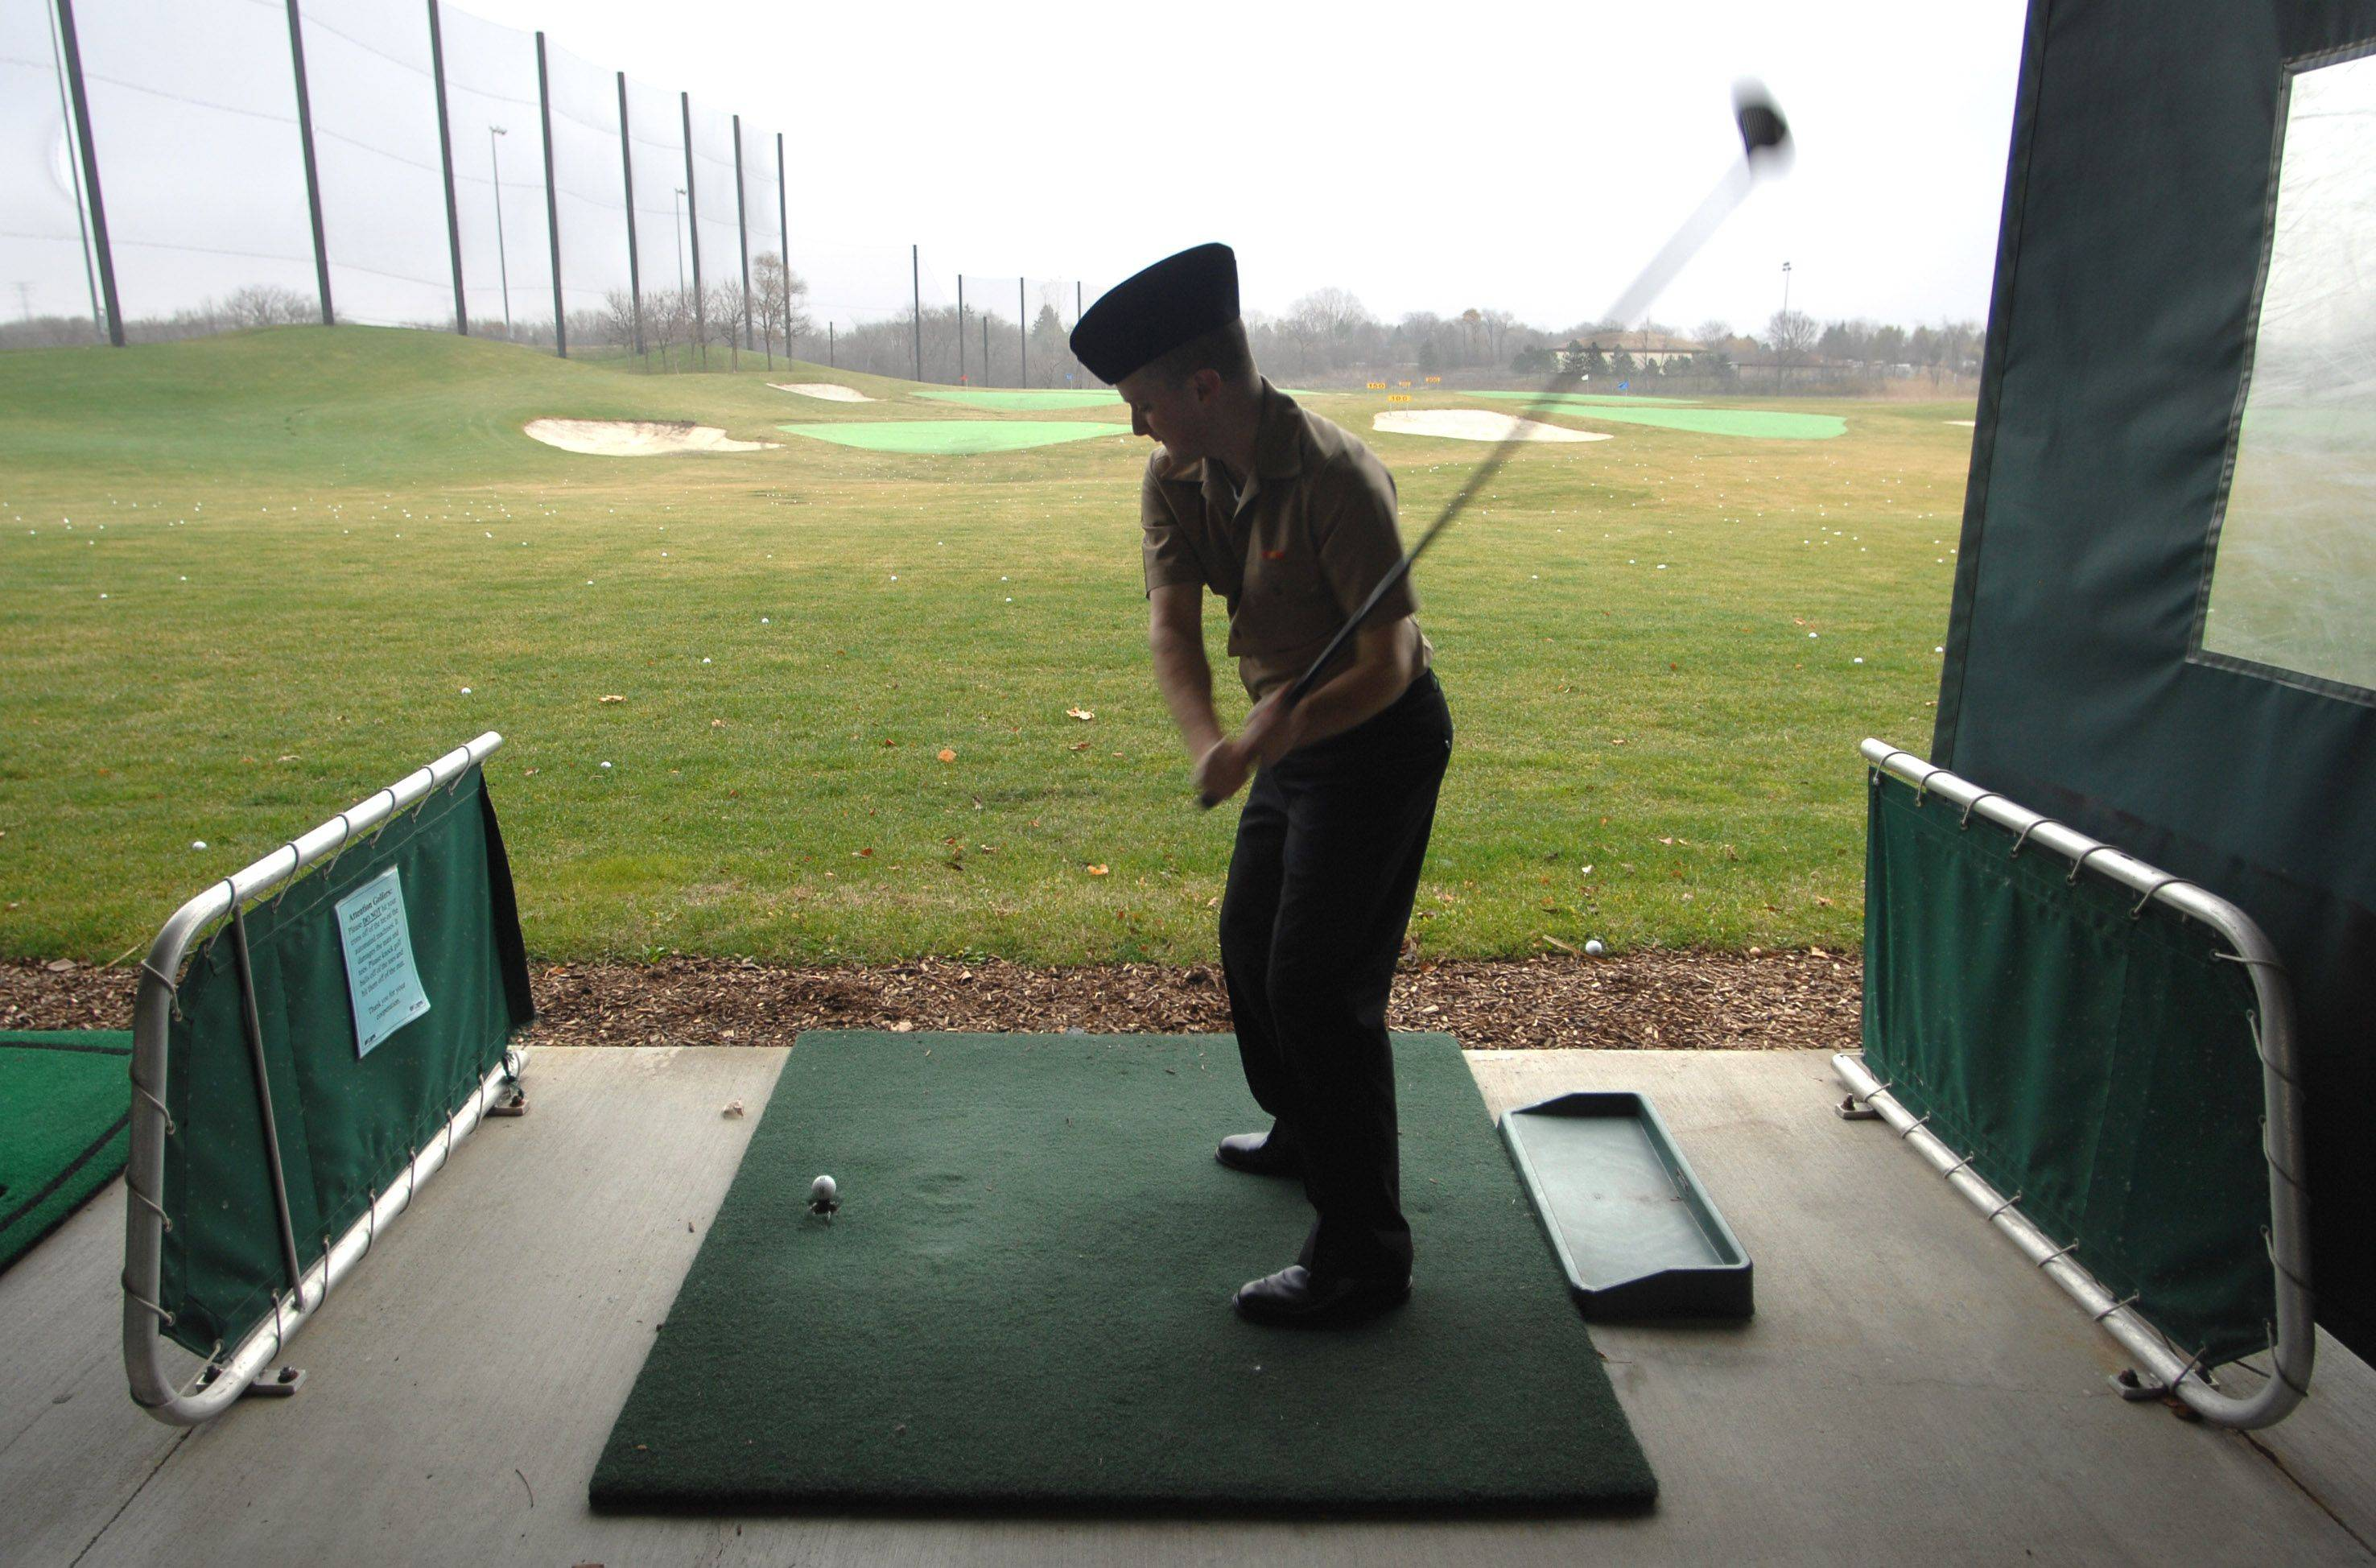 Samuel Harsh of Monroe, North Carolina hits the driving range at the Libertyville Sports Complex Thanksgiving day. He and eleven other Great Lakes recruits were treated to a day of fun compliments of the New Life Evangelical Lutheran Church in Lake Zurich.